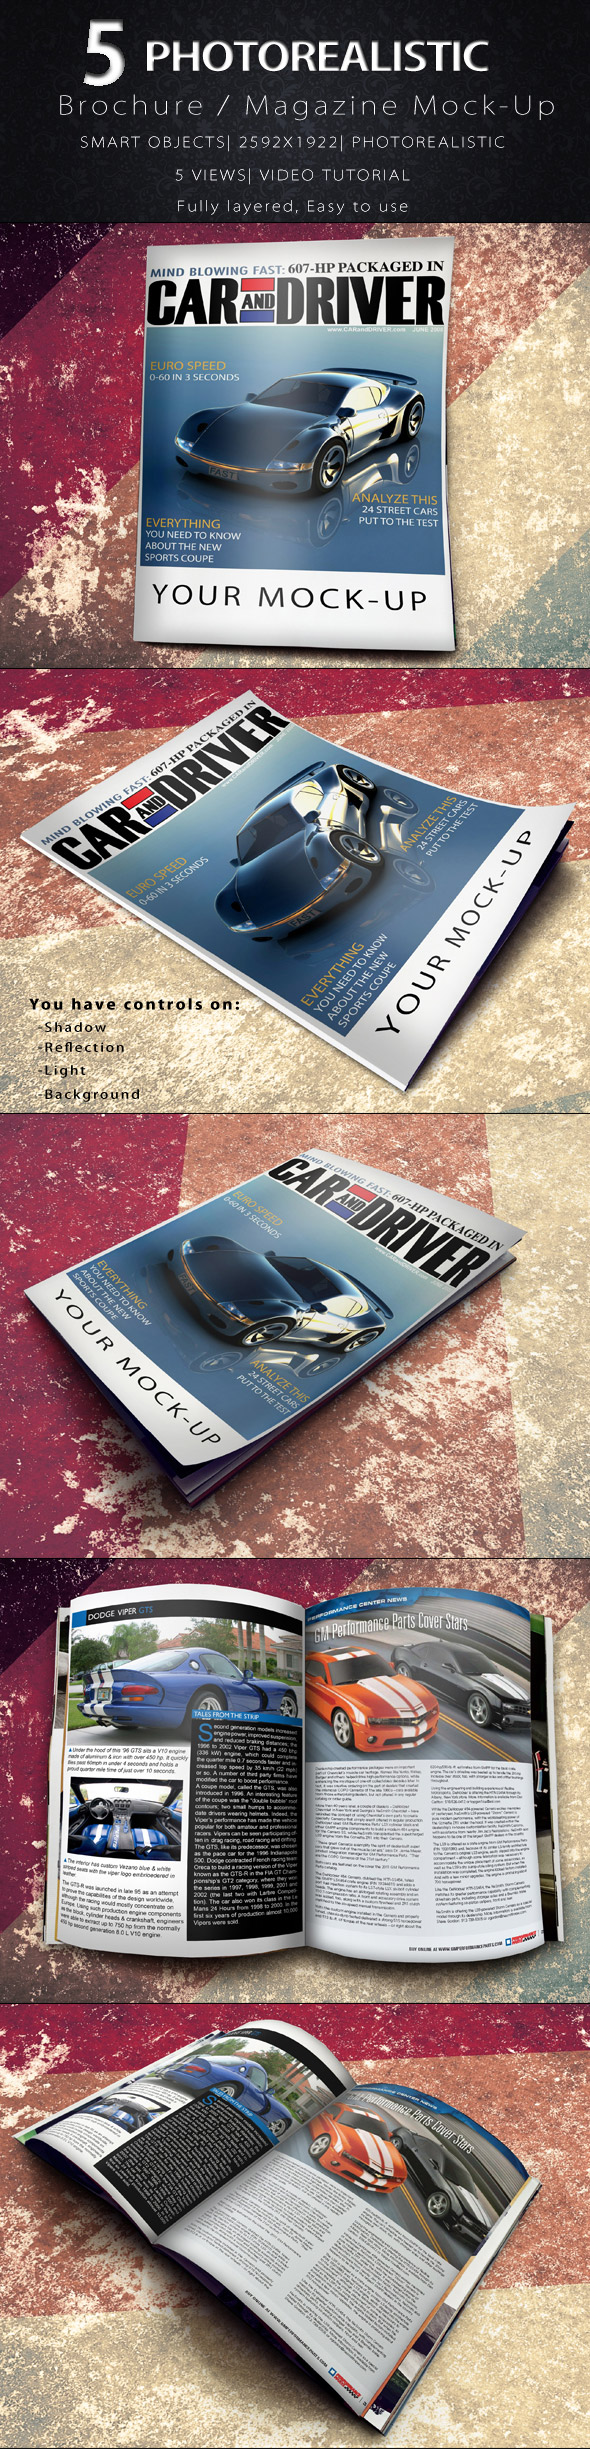 Photorealistic-Magazine-Mock-Up